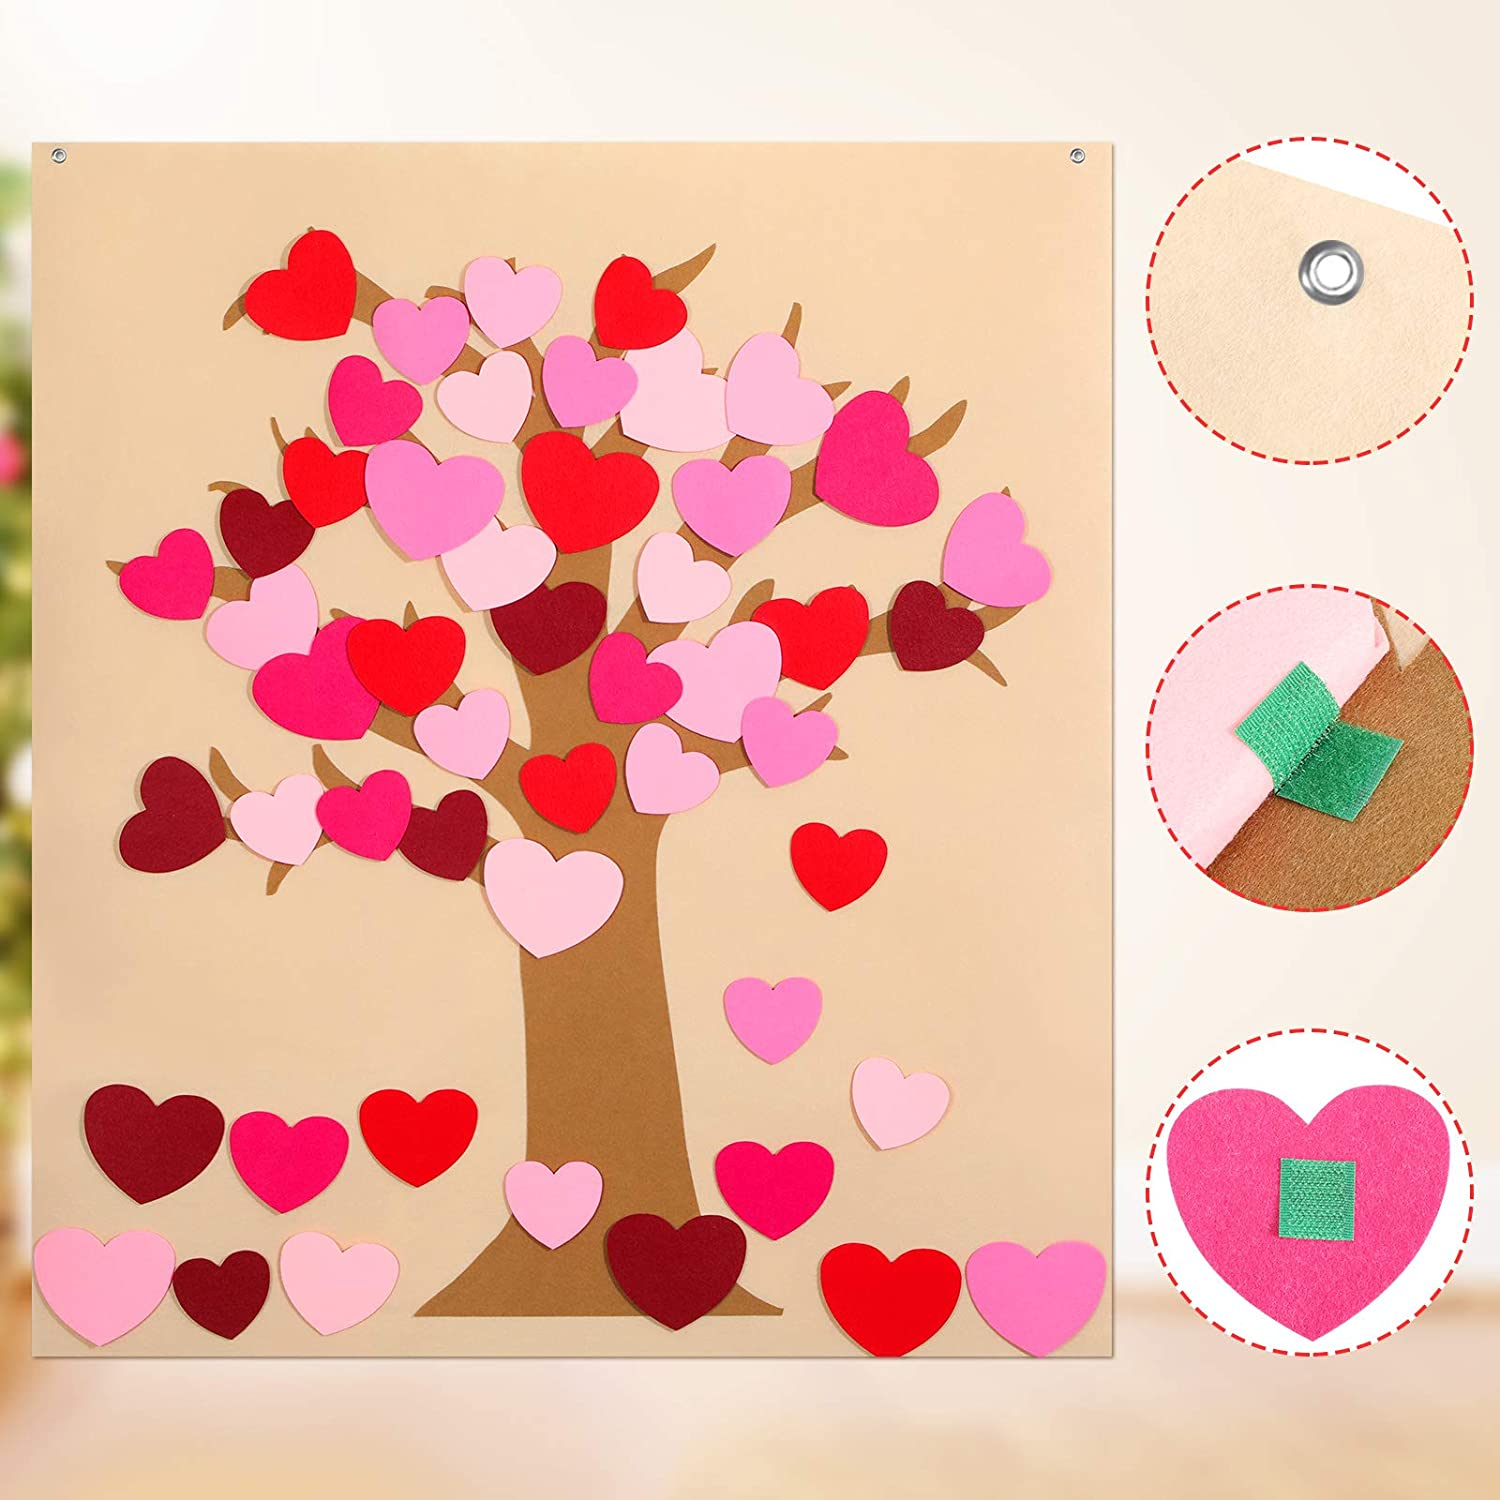 Boao 50 Pieces Detachable Heart Ornaments DIY Felt Valentine Tree Set with 4 Transparent Wall Hooks Valentines Day Hanging Decoration Door Wall Valentine Party Favors Supplies Fun DIY Toys